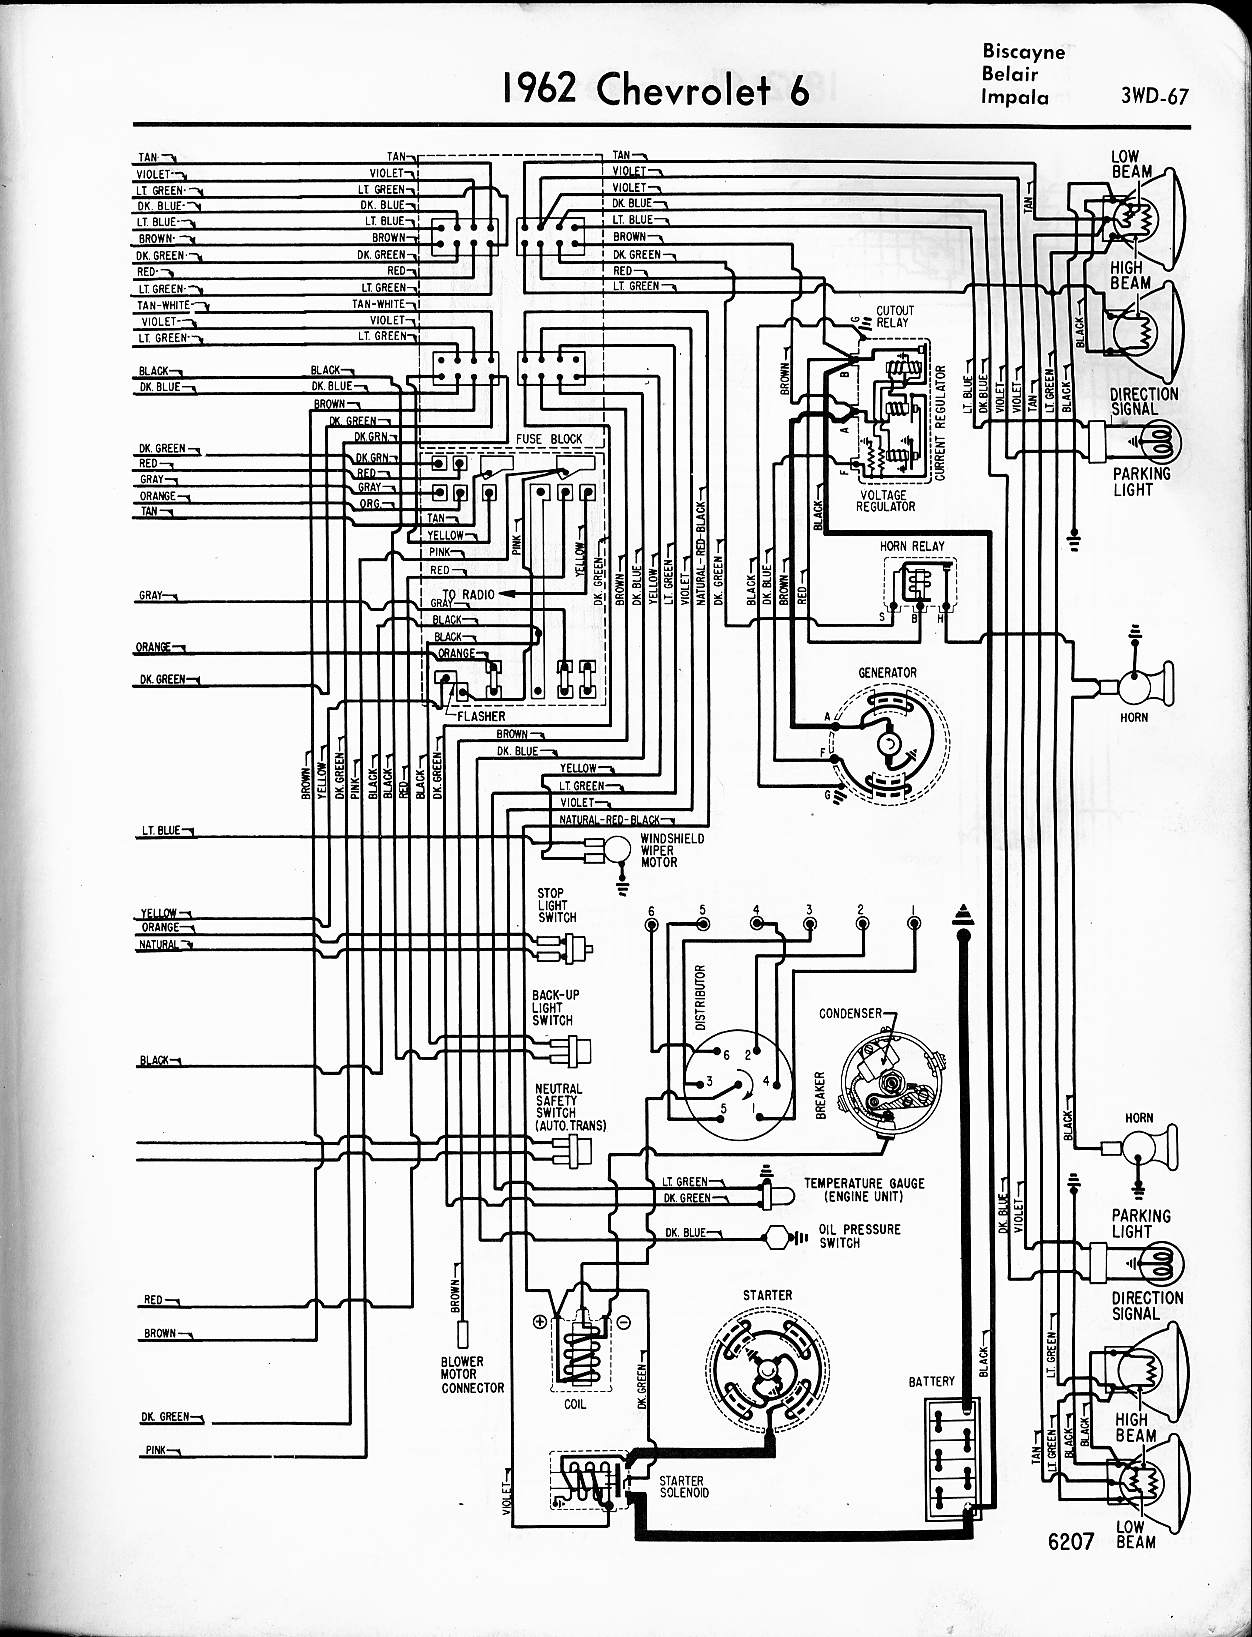 1961 chevy starter wiring diagram 84 chevy starter wiring diagram 57 - 65 chevy wiring diagrams